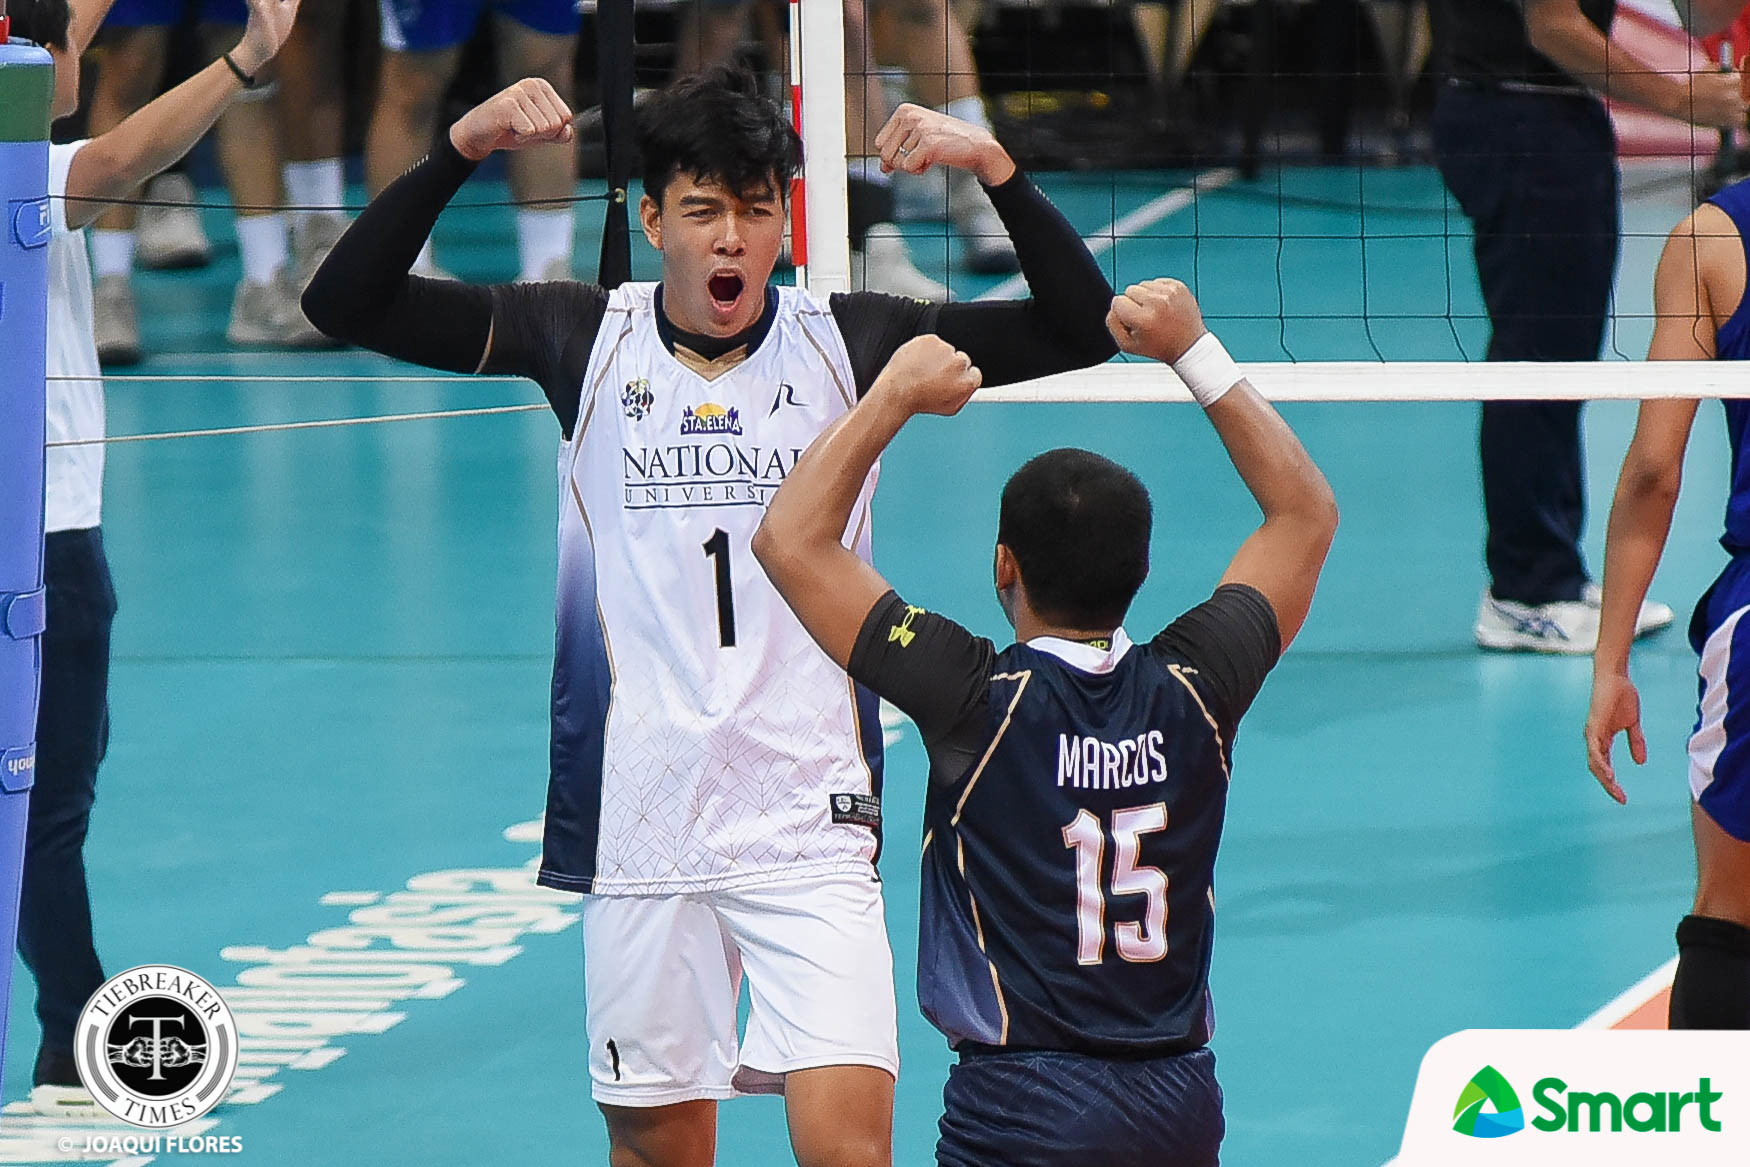 Tiebreaker Times Bryan Bagunas, Bulldogs end four-year curse against Blue Eagles ADMU News NU UAAP Volleyball  UAAP Season 80 Men's Volleyball UAAP Season 80 Ron Medalla Ricky Marcos Oliver Almadro NU Men's Volleyball Maeck Espejo Madz Gampong Kim Dayandante Dante Alinsunurin Bryan Bagunas Ateneo Men's Volleyball